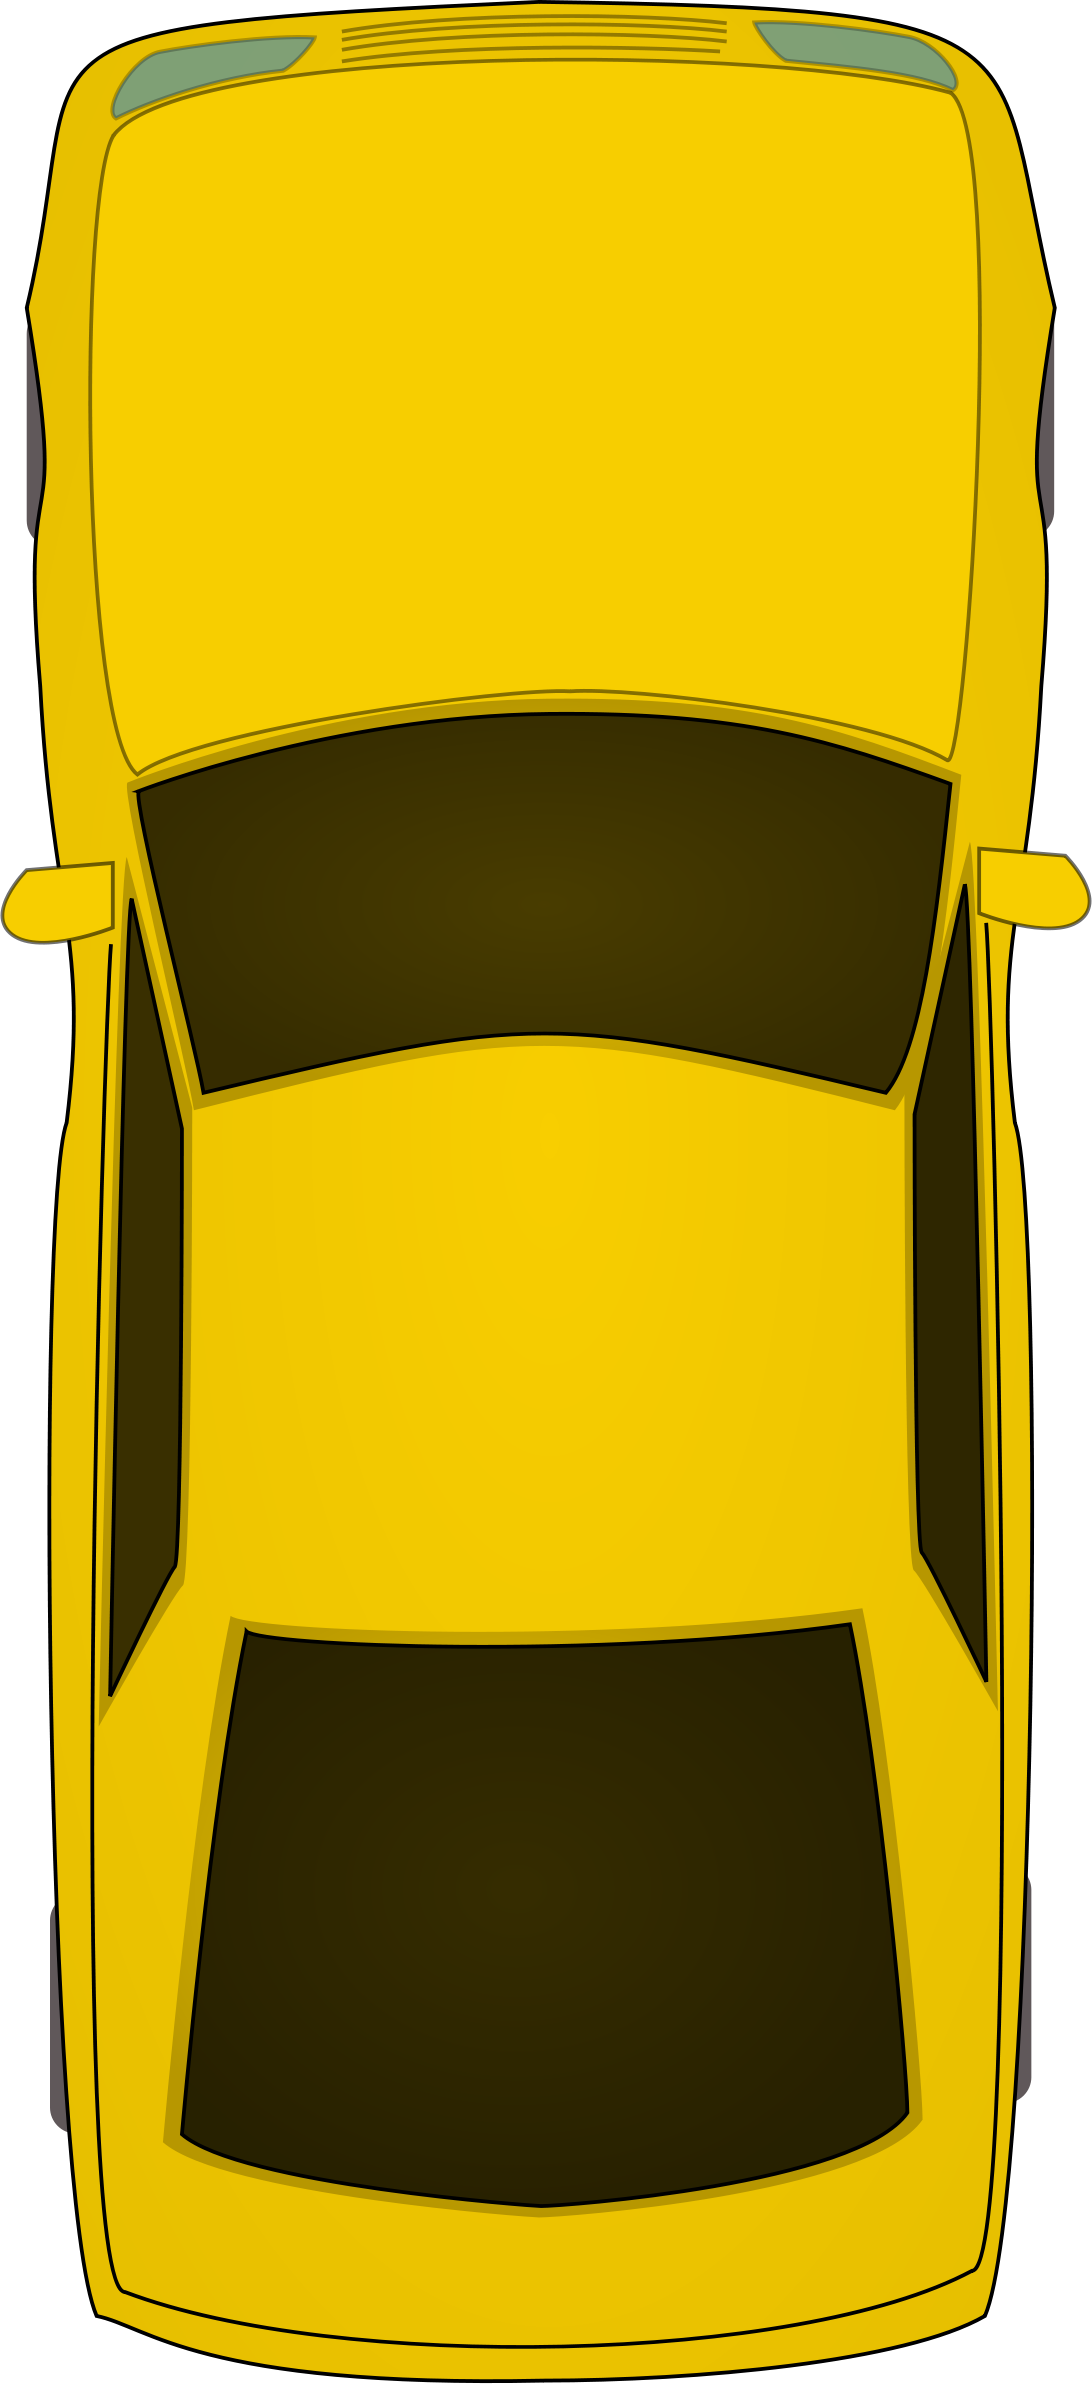 Aerial view car clipart.